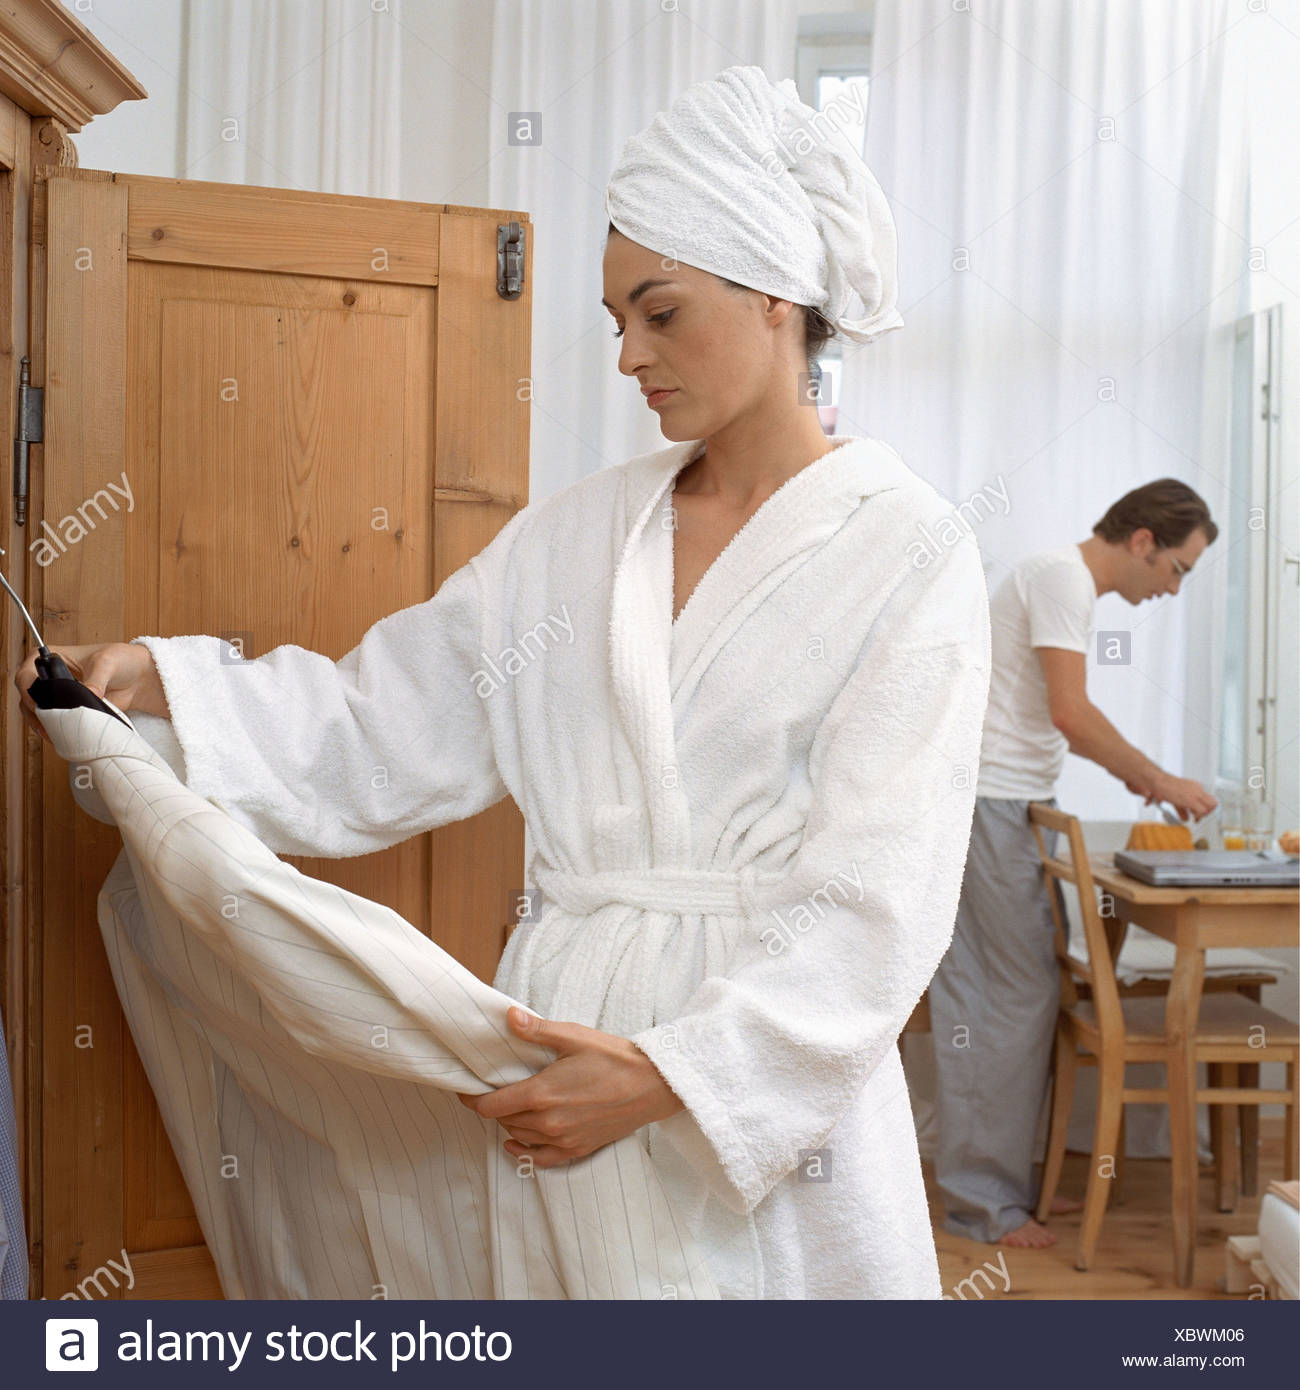 Woman deciding what to wear - Stock Image